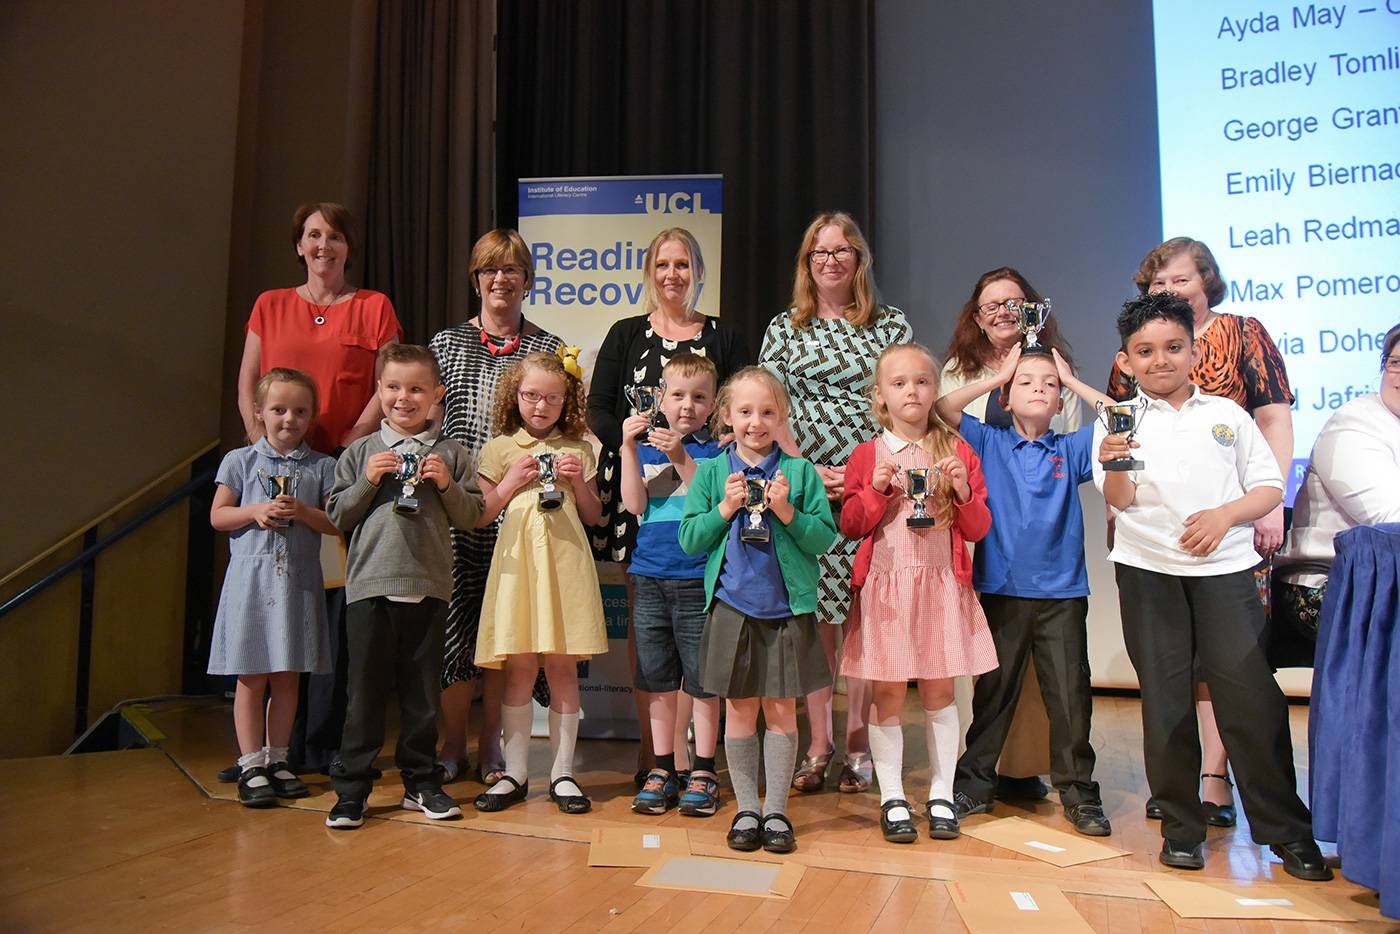 Reading Recovery Awards